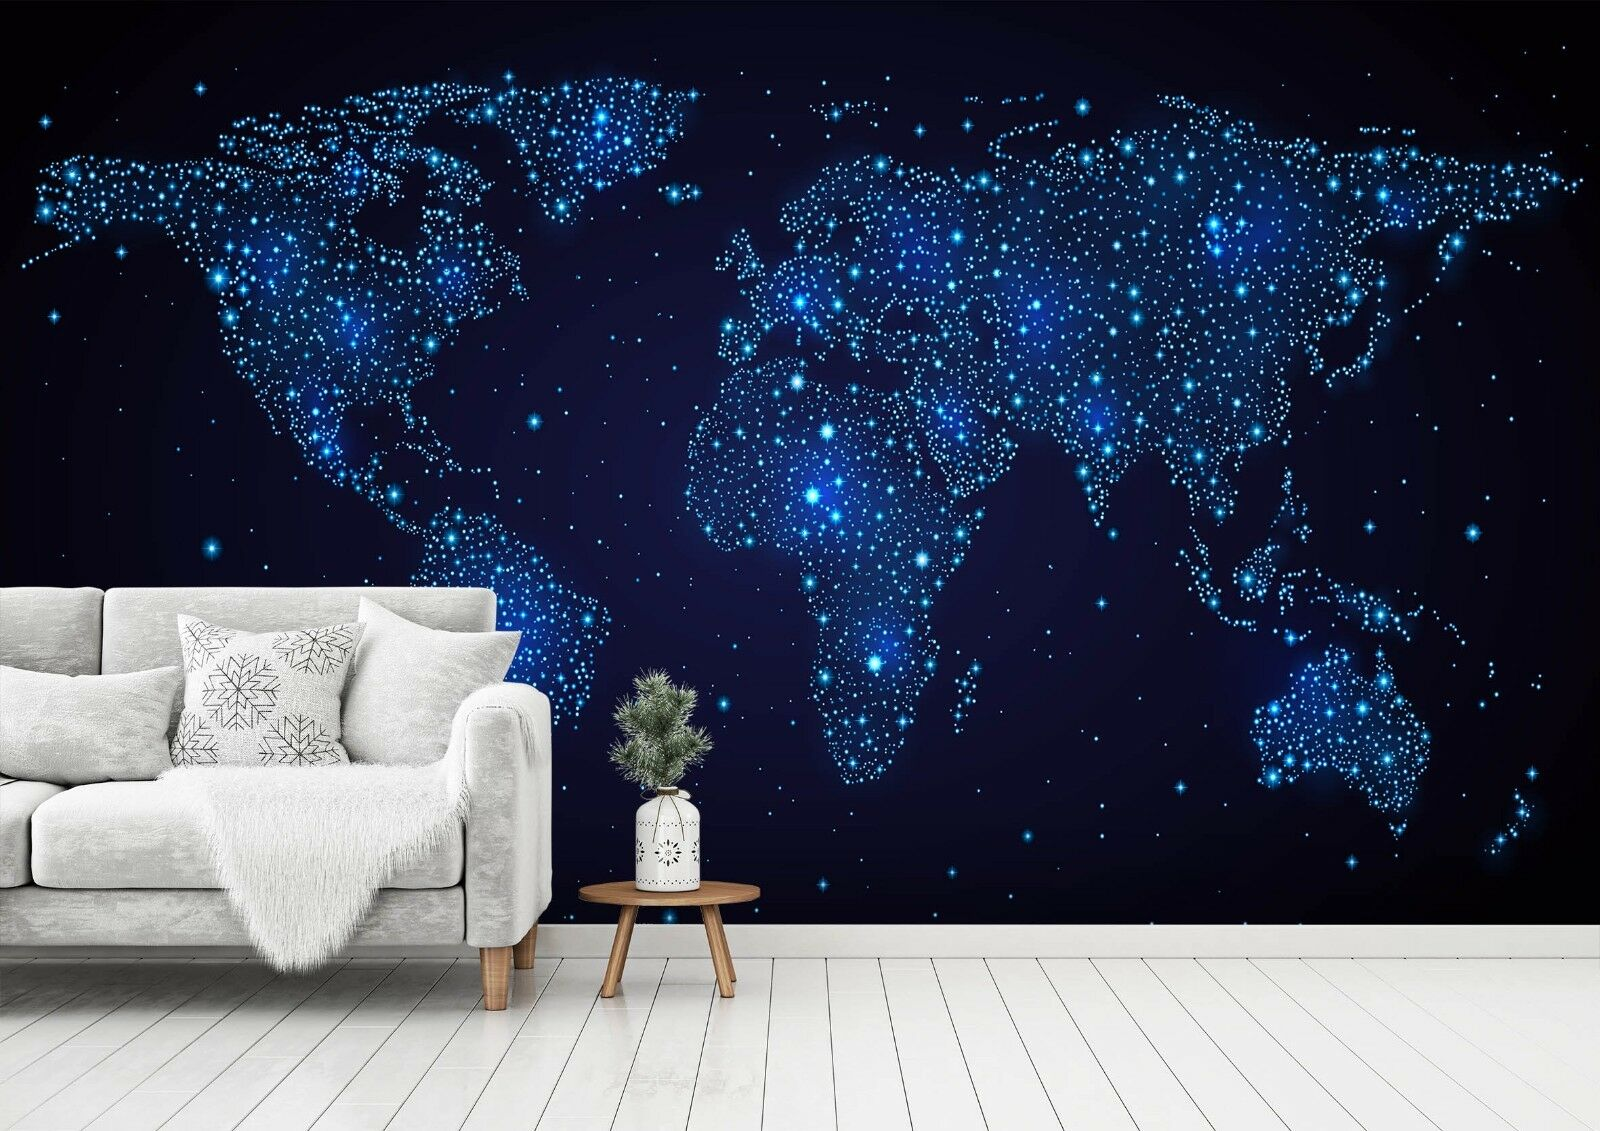 3D Star Map 7599 Wall Paper Exclusive MXY Wallpaper Mural Decal Indoor Wall AJ